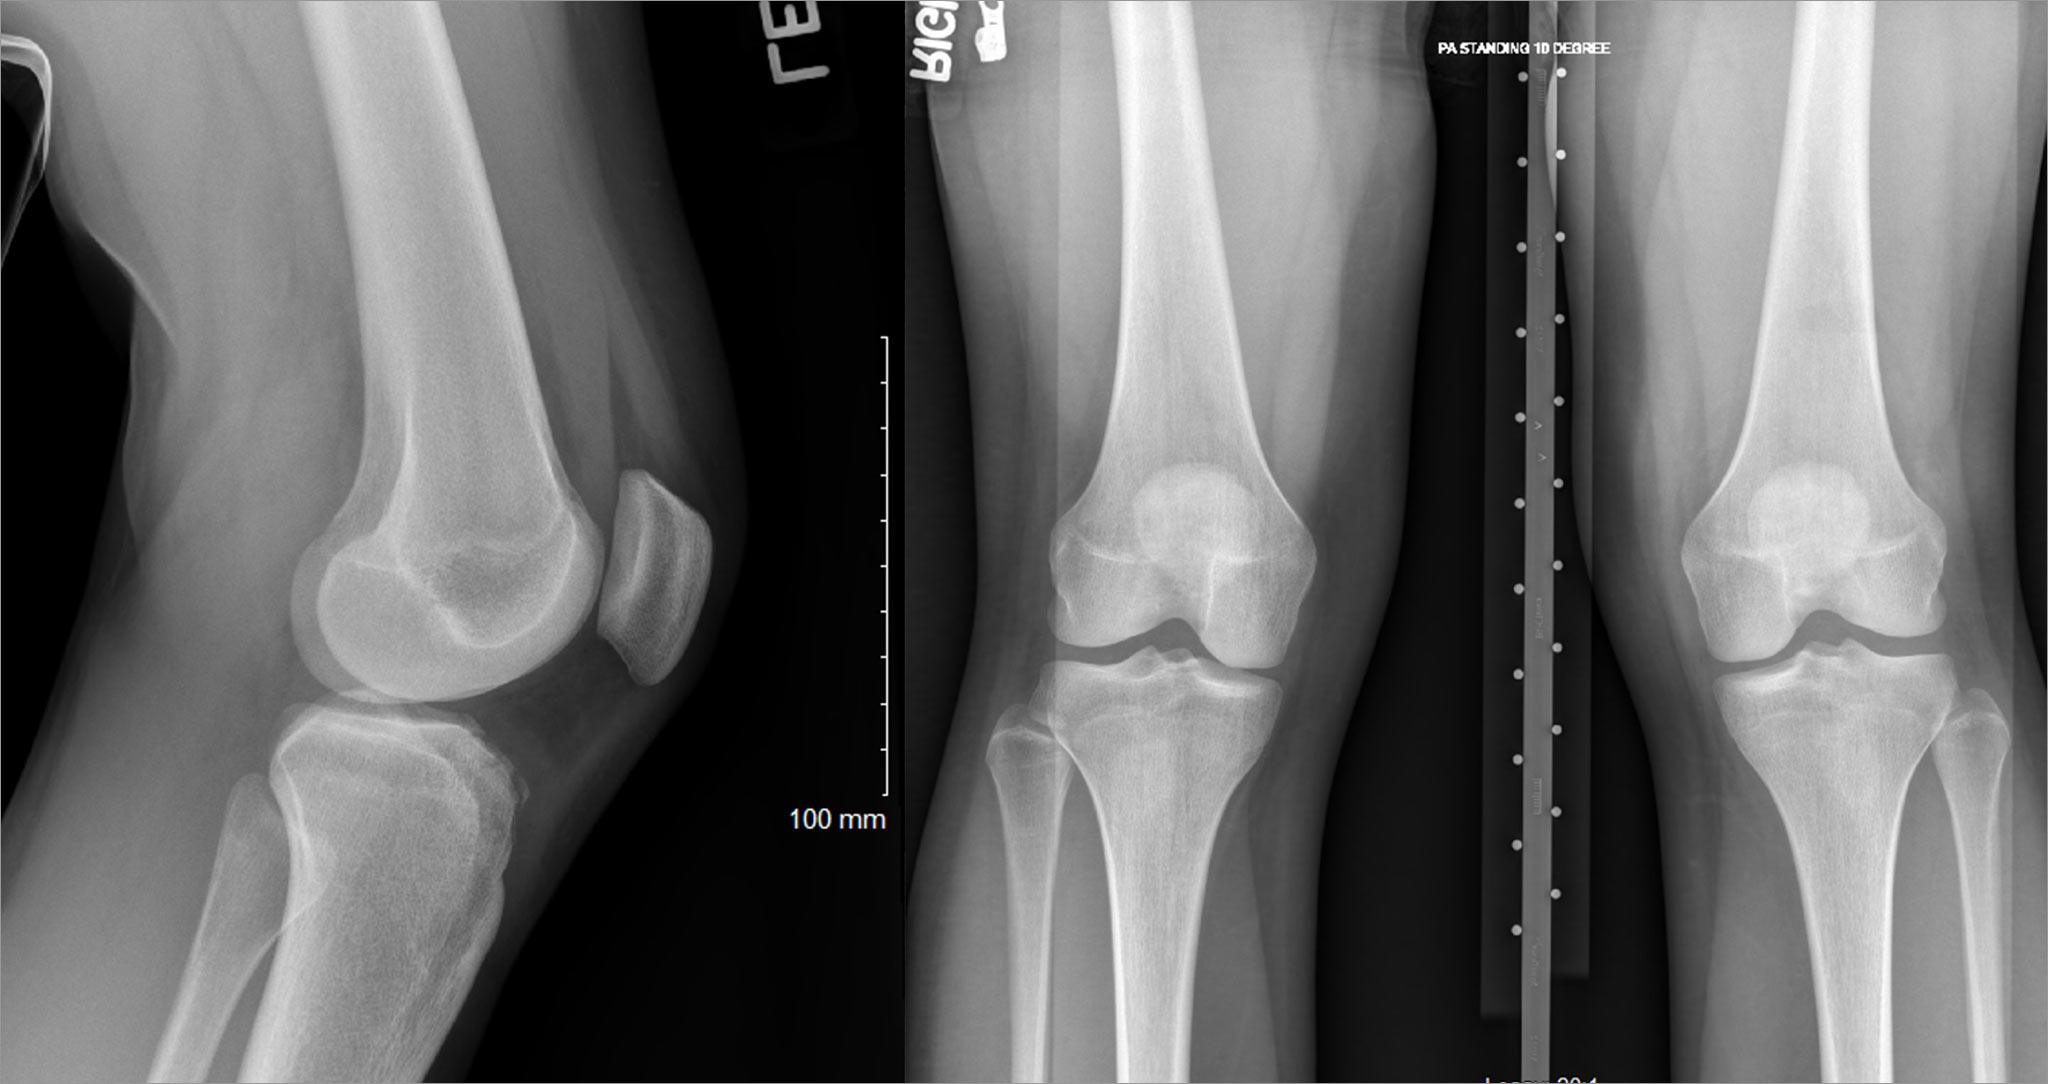 Three side-by-side X-rays of Mac's knee, from the front, back, and side.